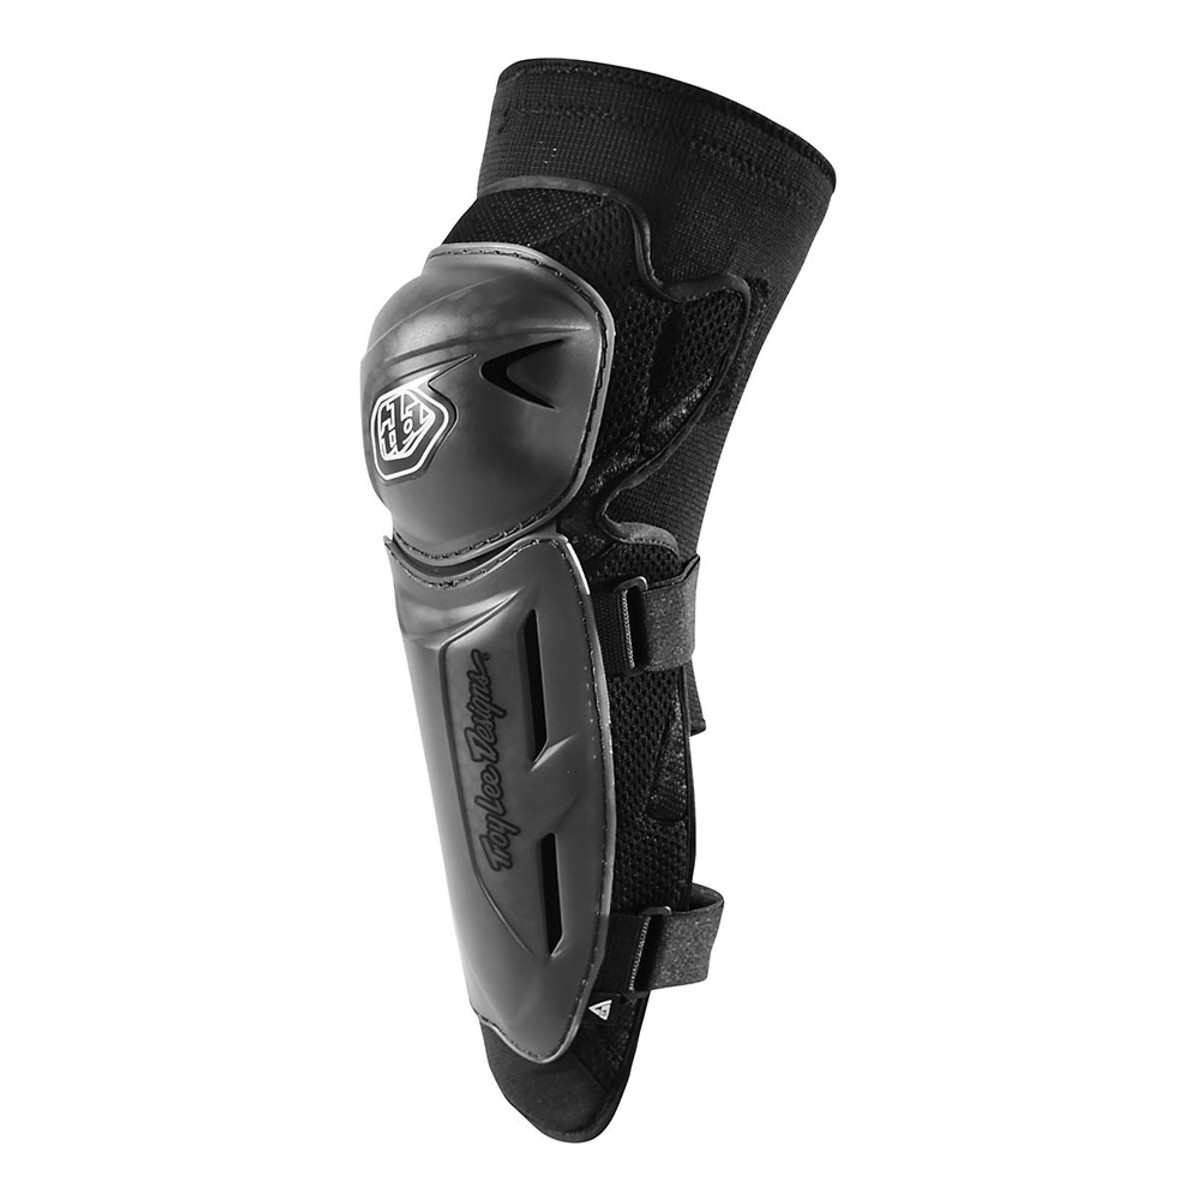 Method Knee Guards - black